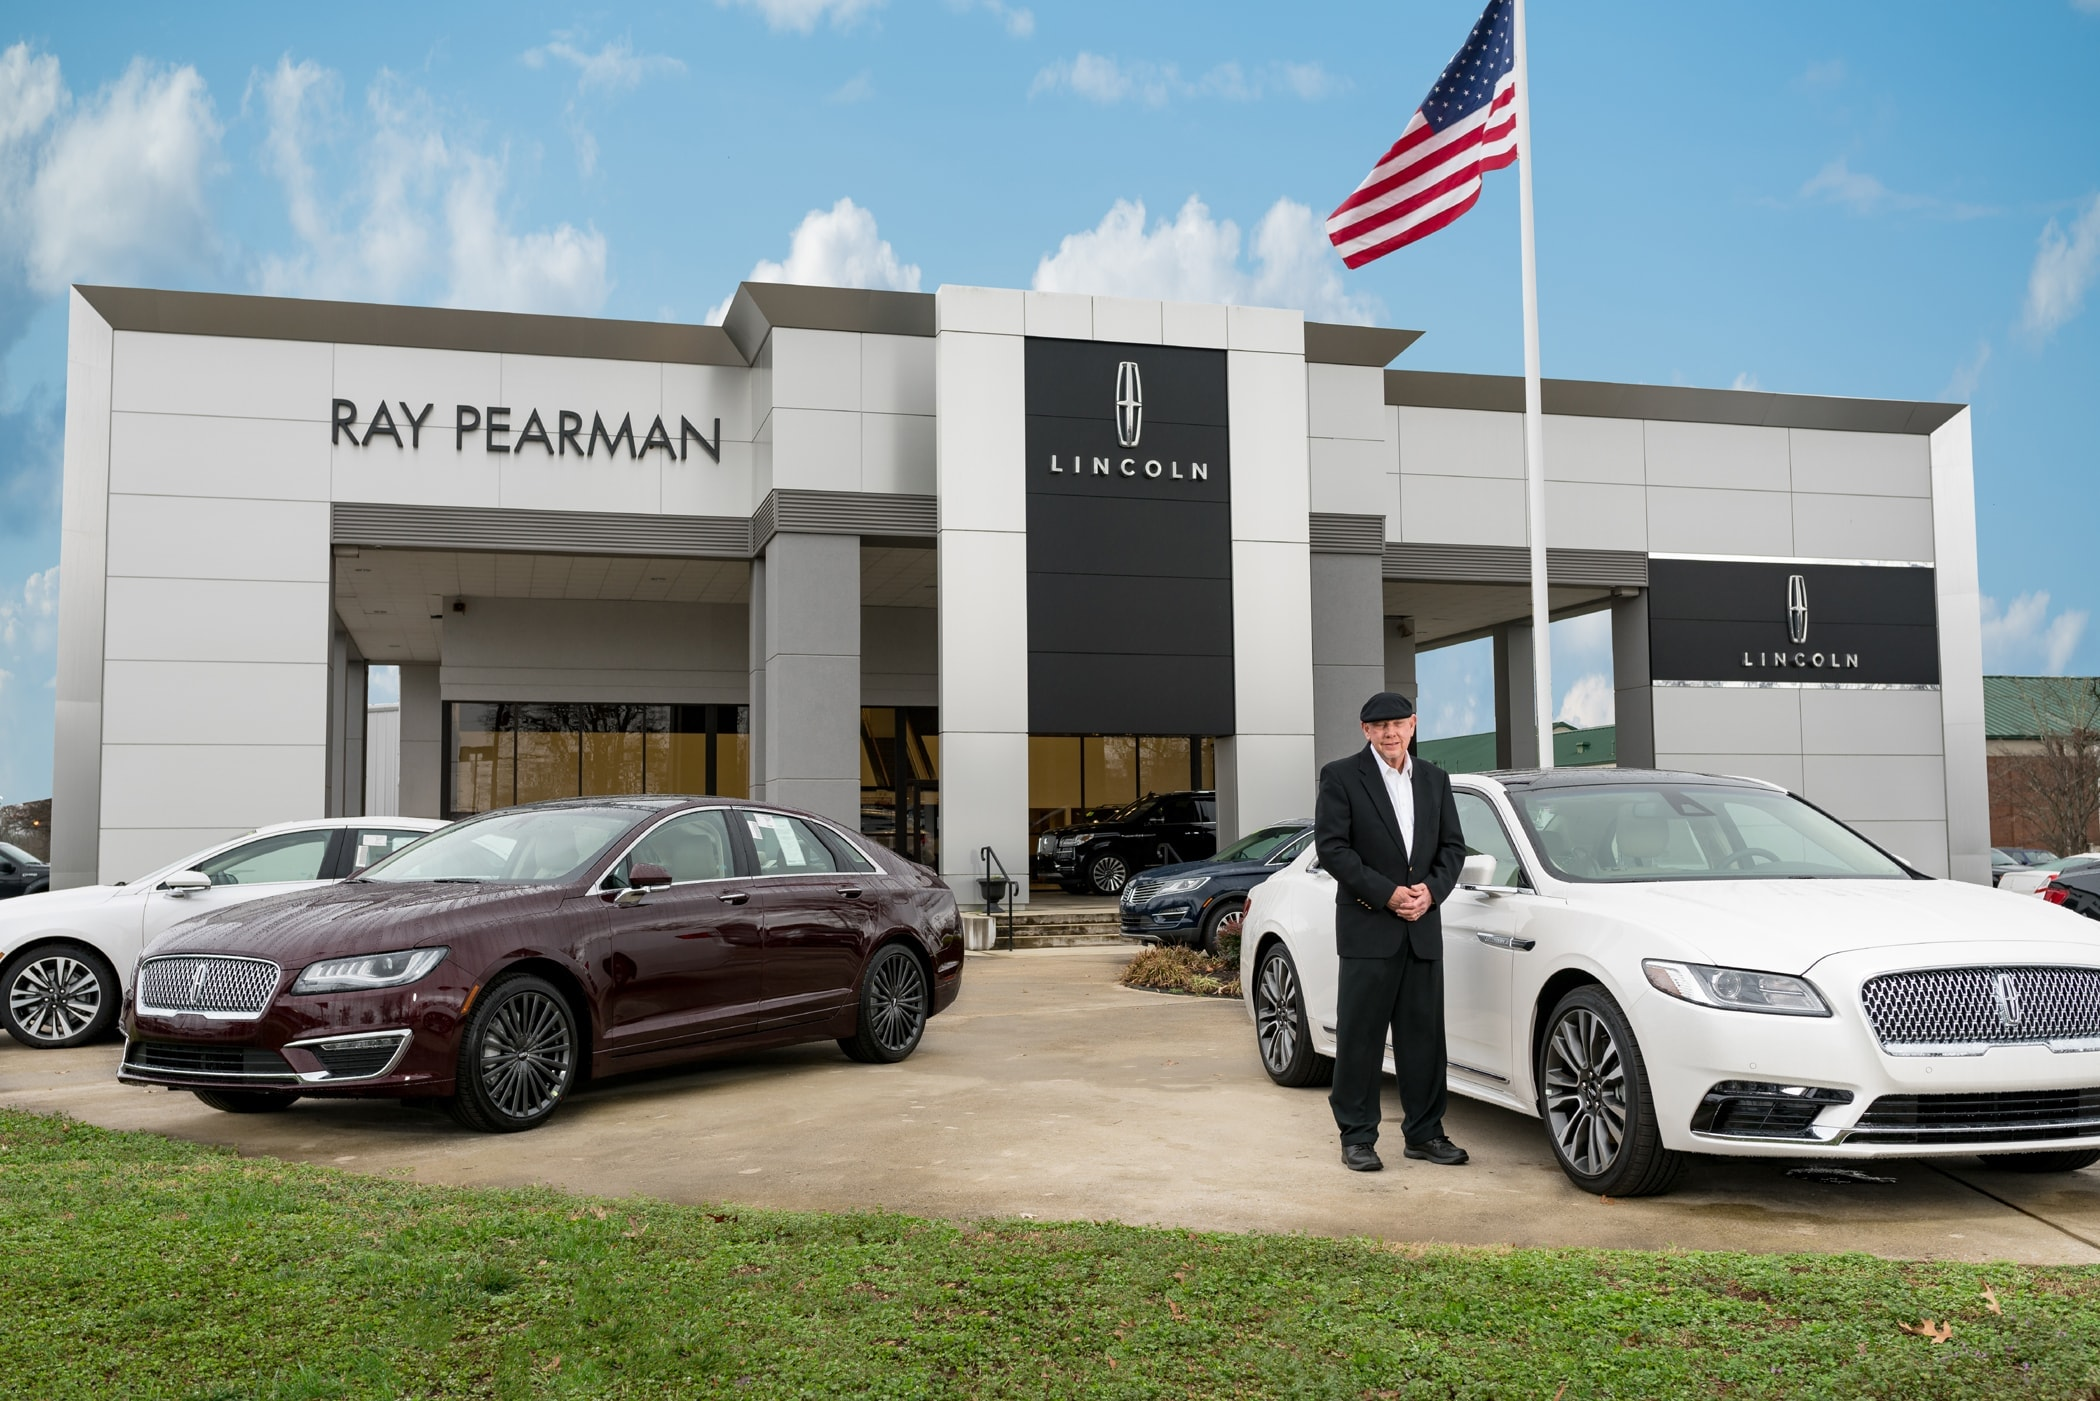 Ray Pearman Used Cars >> New And Used Lincoln Dealership In Huntsville Ray Pearman Lincoln